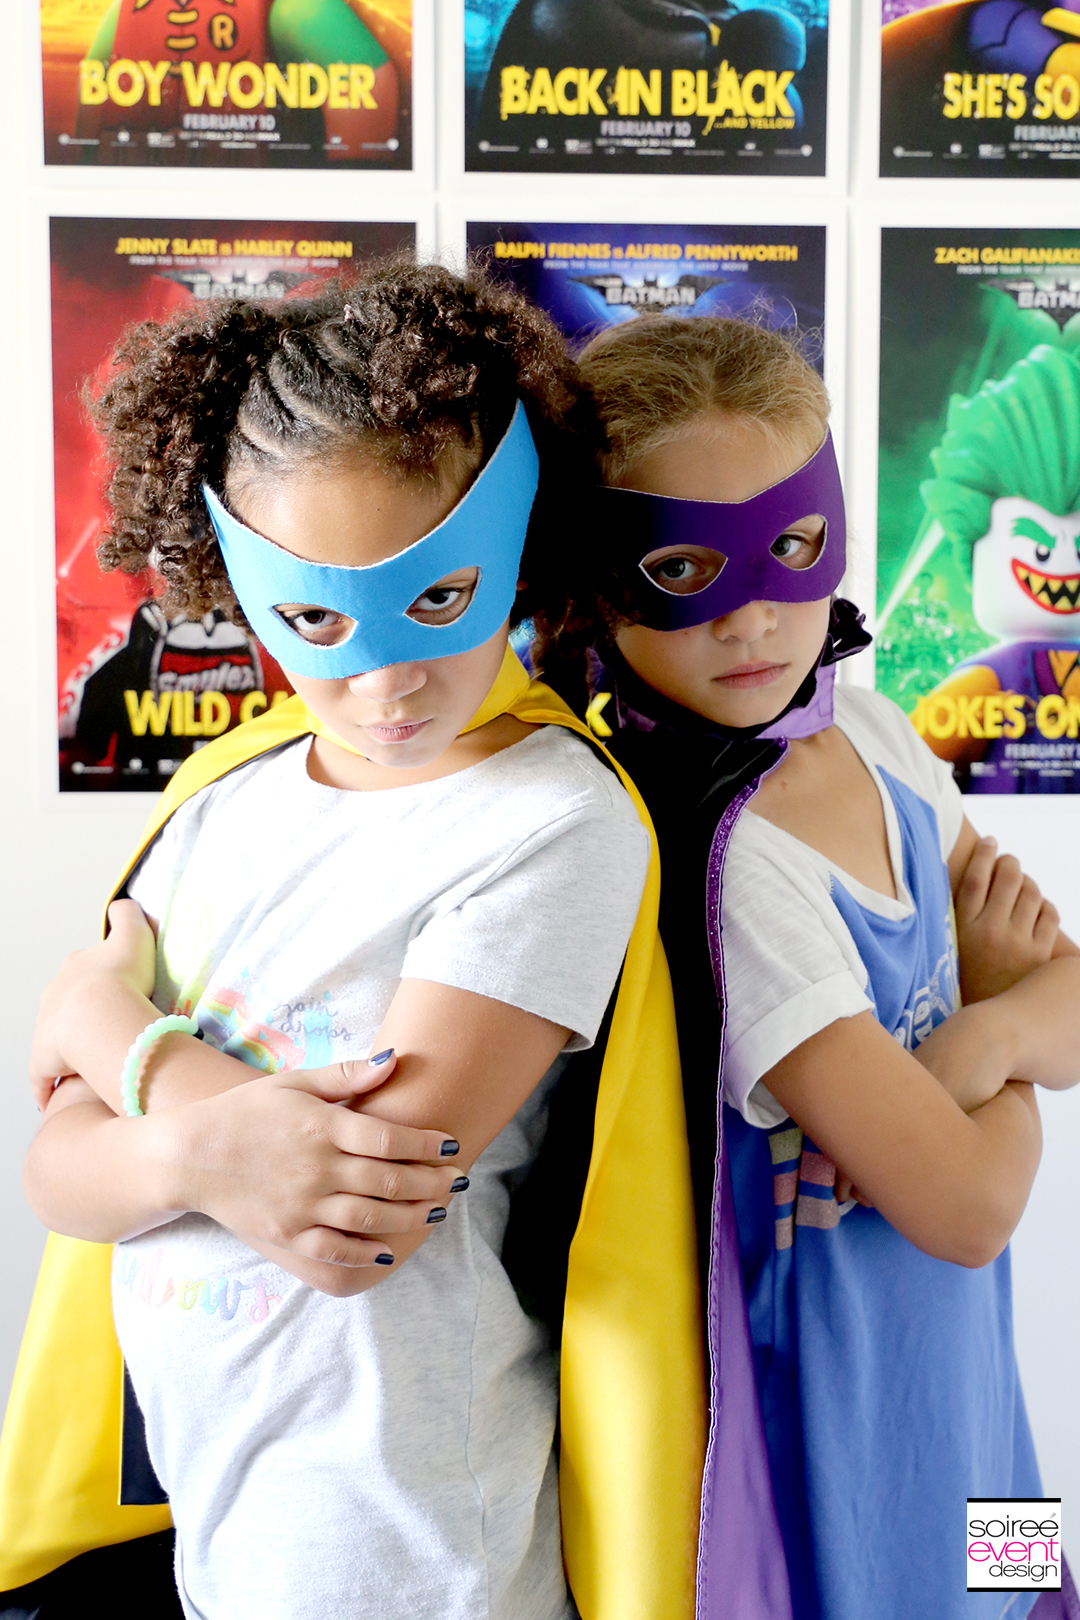 Lego Batman Party Photo Booth - Superhero Costumes for Girls 2